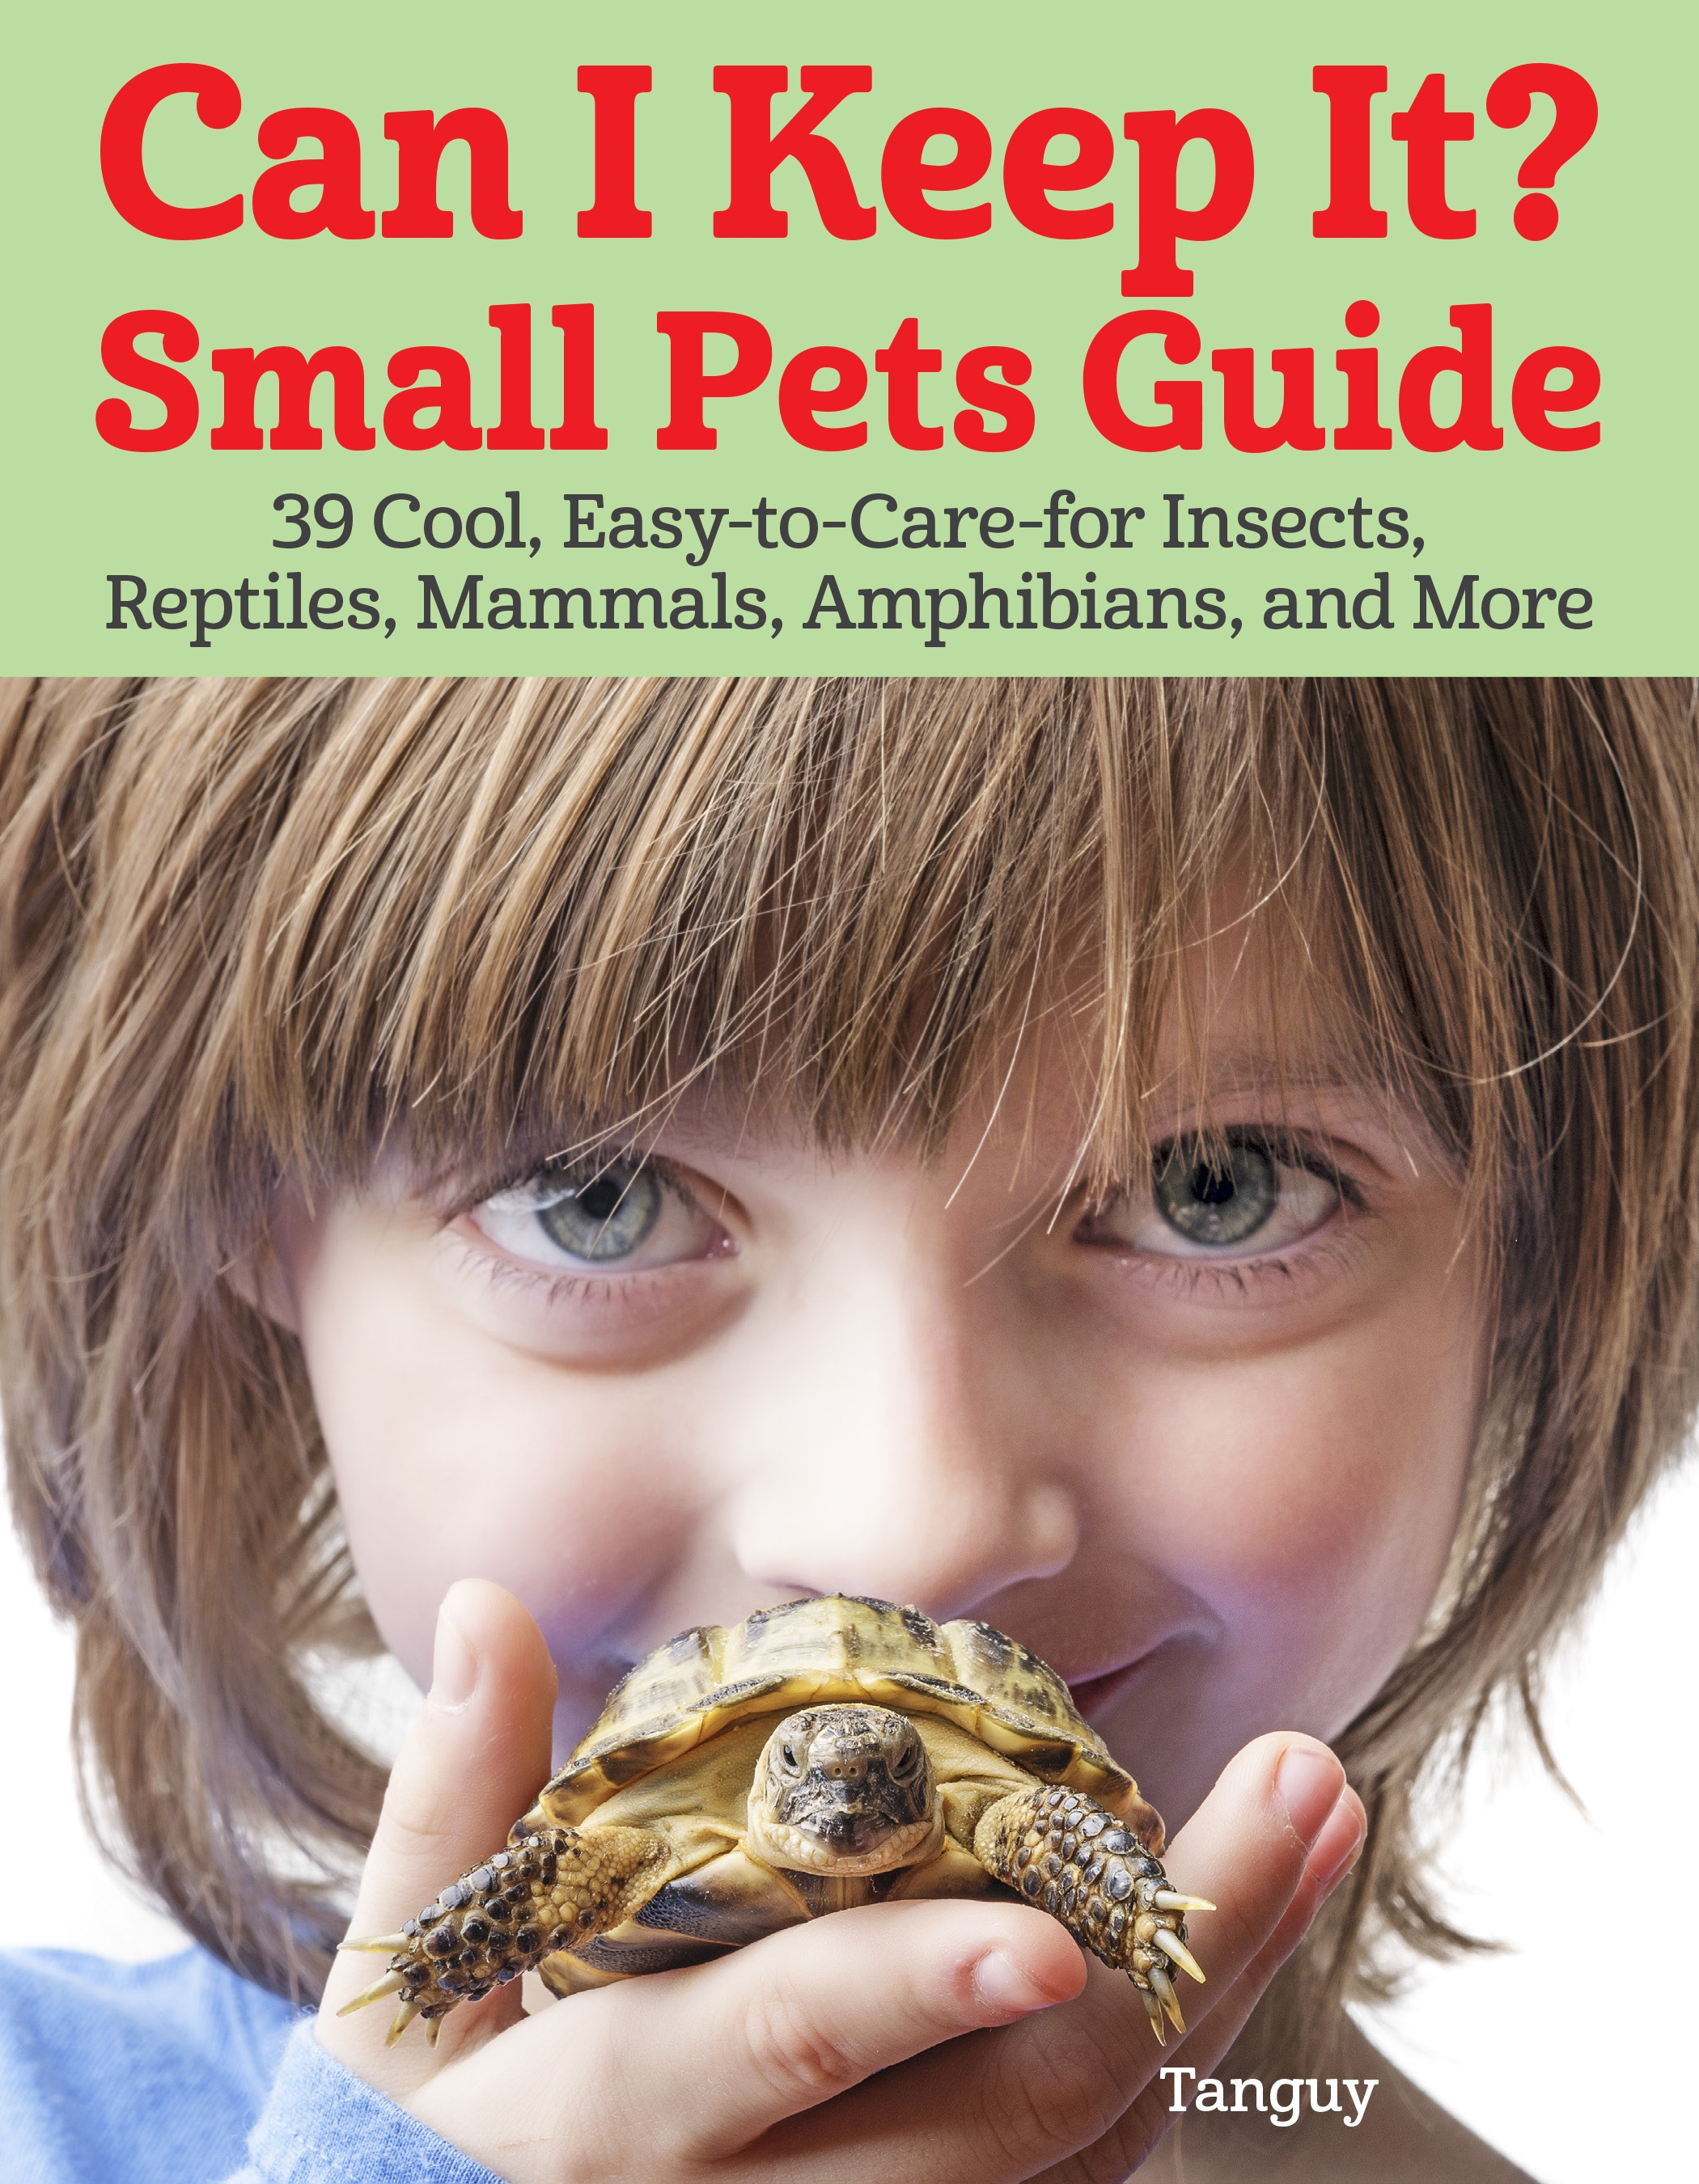 Can I Keep It? Small Pets Guide